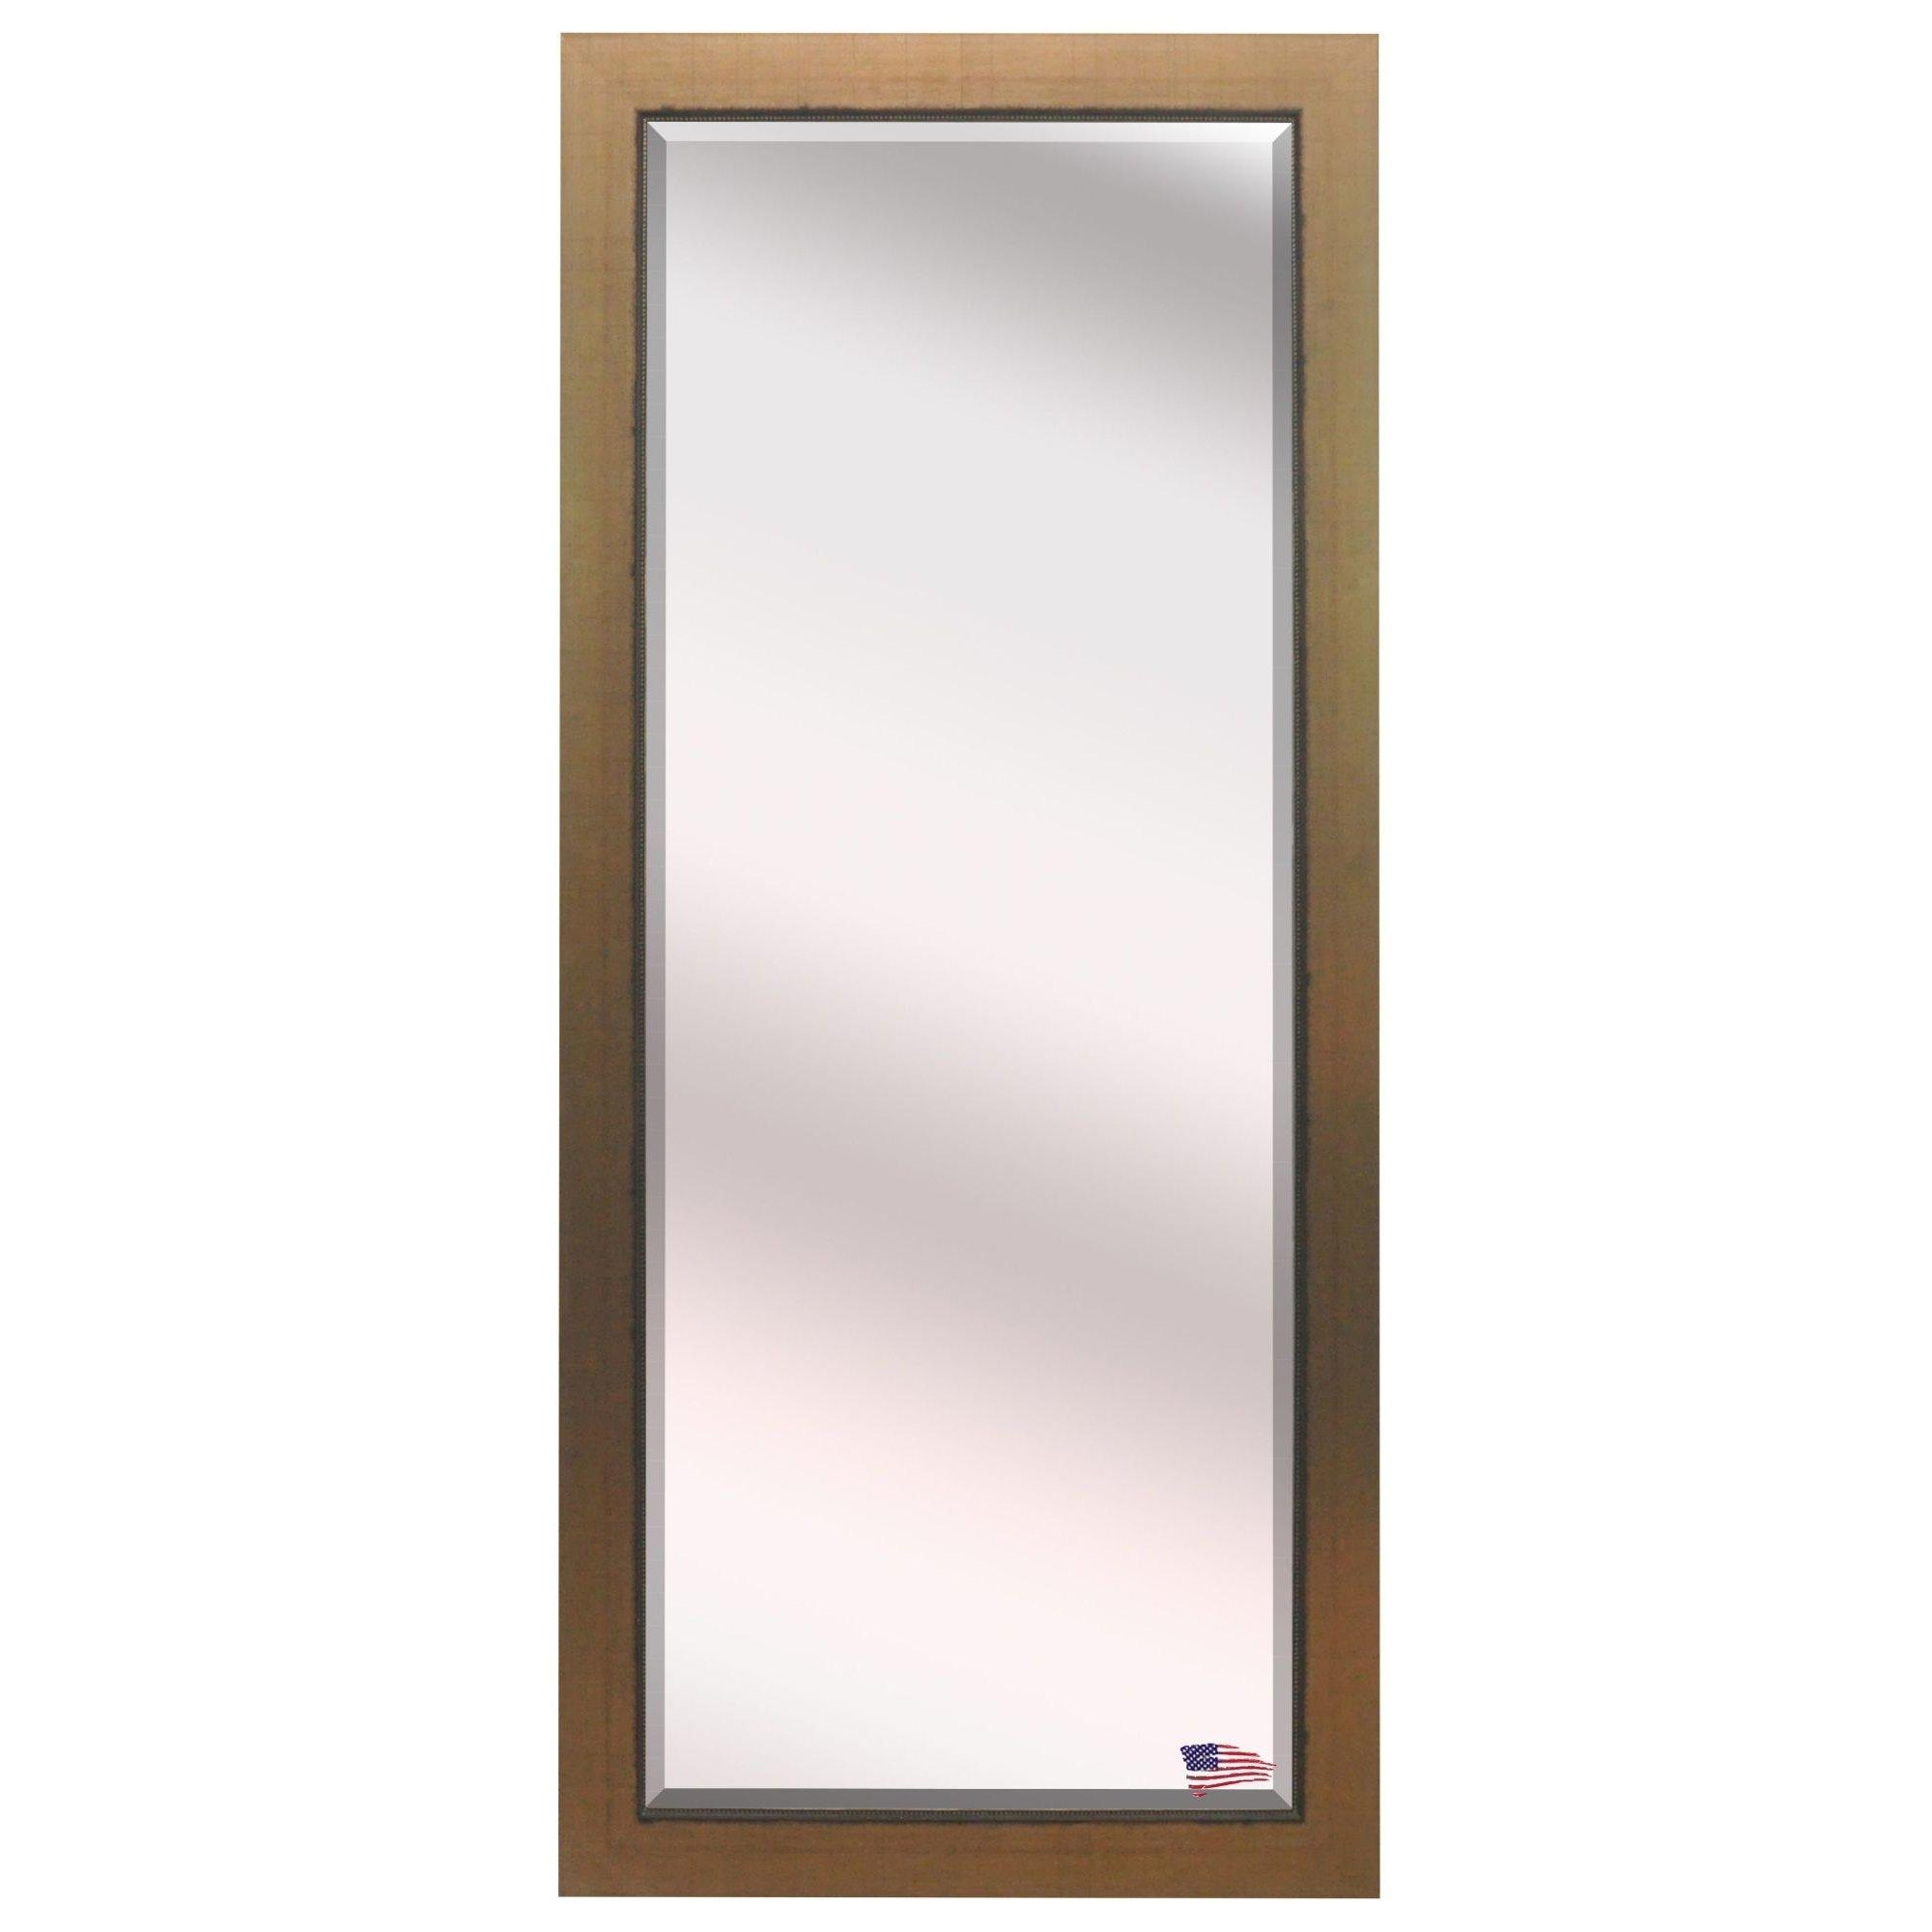 Darby Home Co Beveled Gold Wall Mirror & Reviews | Wayfair Regarding Gold Wall Mirrors (Image 4 of 20)